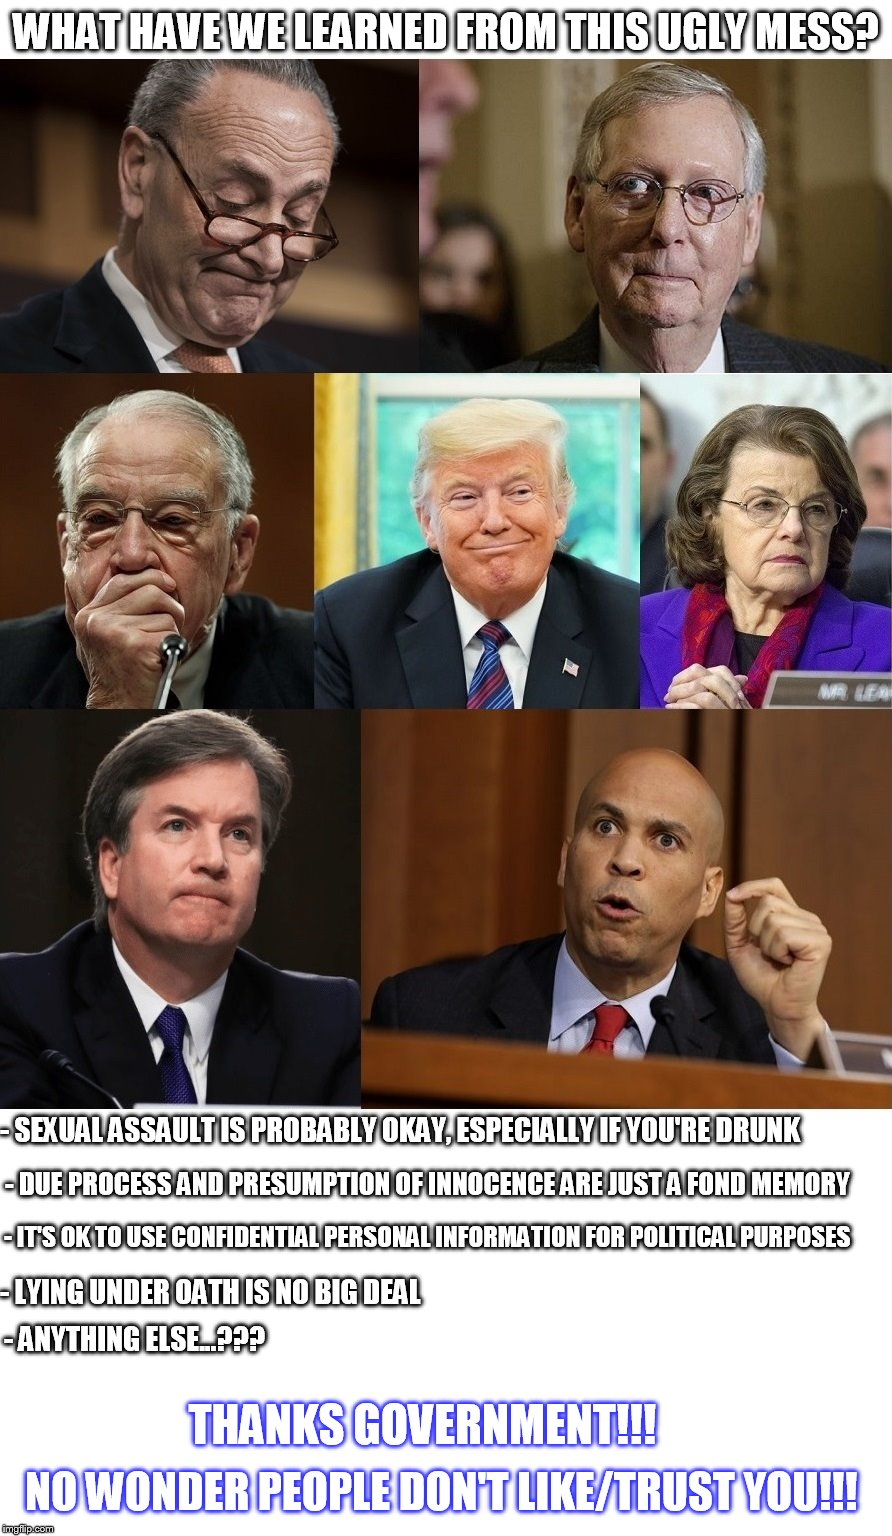 WHAT HAVE WE LEARNED FROM THIS UGLY MESS? - LYING UNDER OATH IS NO BIG DEAL - IT'S OK TO USE CONFIDENTIAL PERSONAL INFORMATION FOR POLITICAL | image tagged in kavanaugh,government,chuck schumer,dianne feinstein,cory booker,mitch mcconnell | made w/ Imgflip meme maker